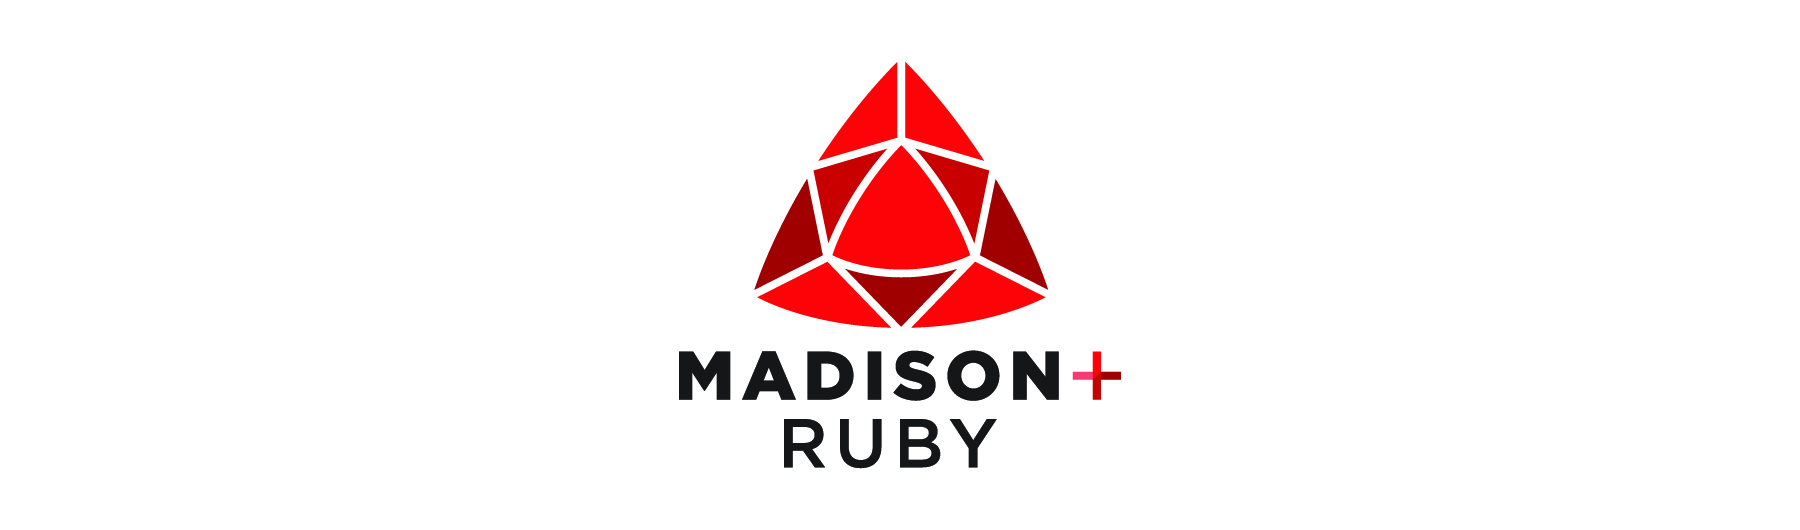 Madison+ Ruby: Chicago